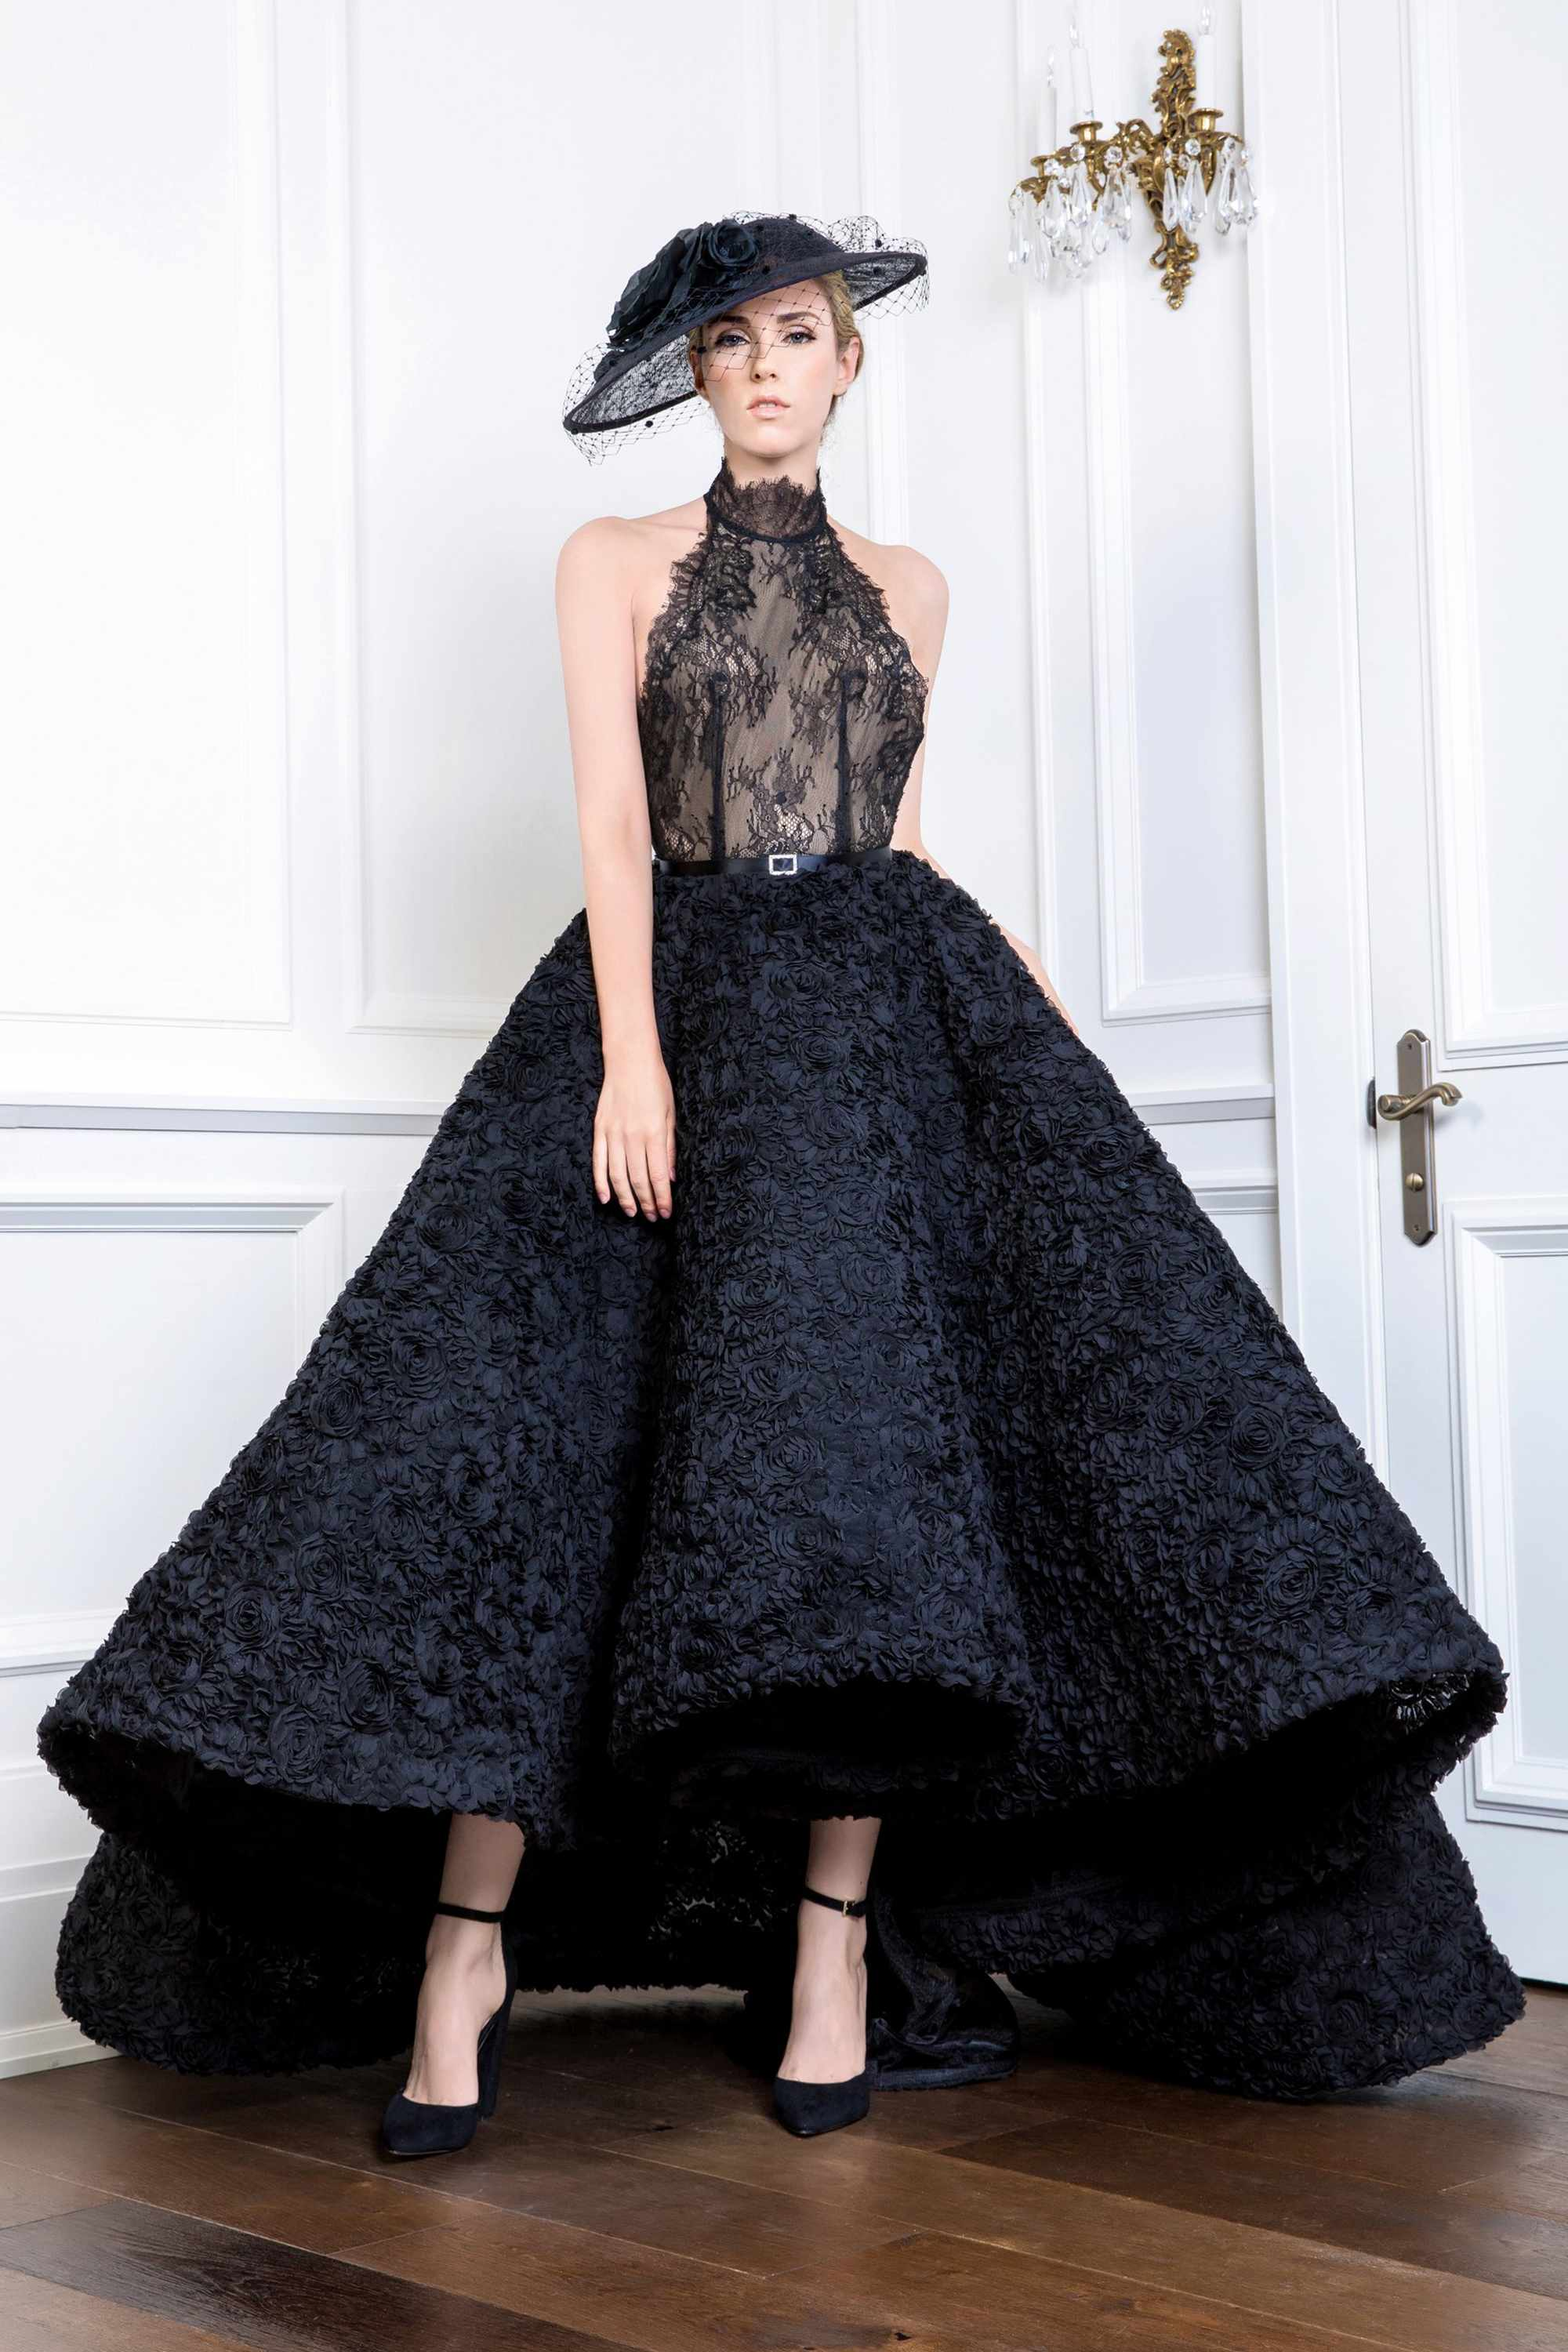 RUFFLE BALL GOWN WITH LACE HALTER NECK TOP, BLACK